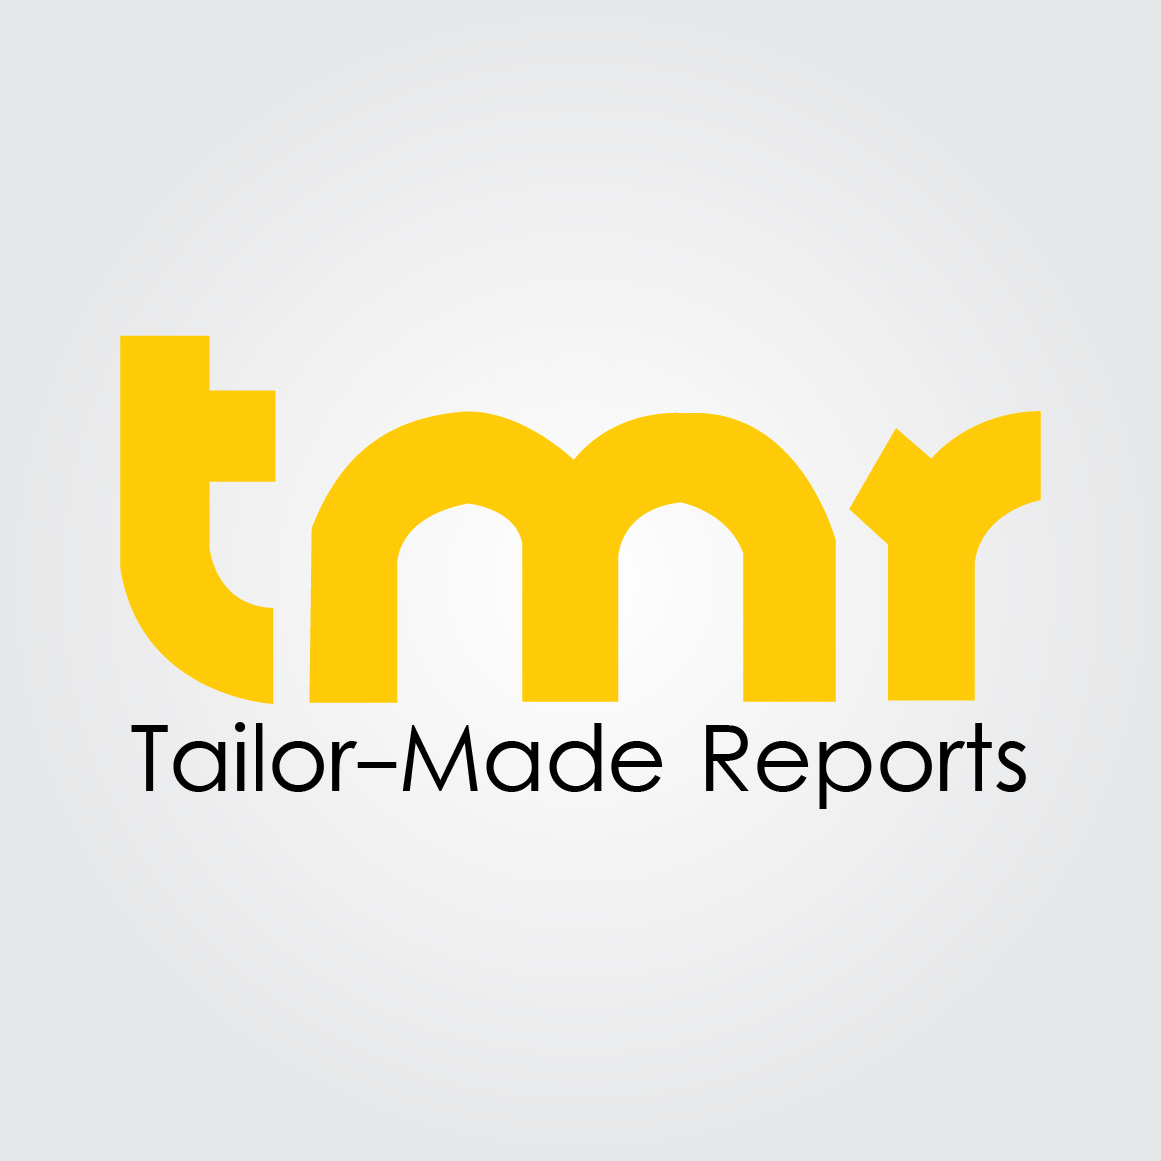 Automotive Transmission Systems Market Trends, Share and Future Growth Analysis Report